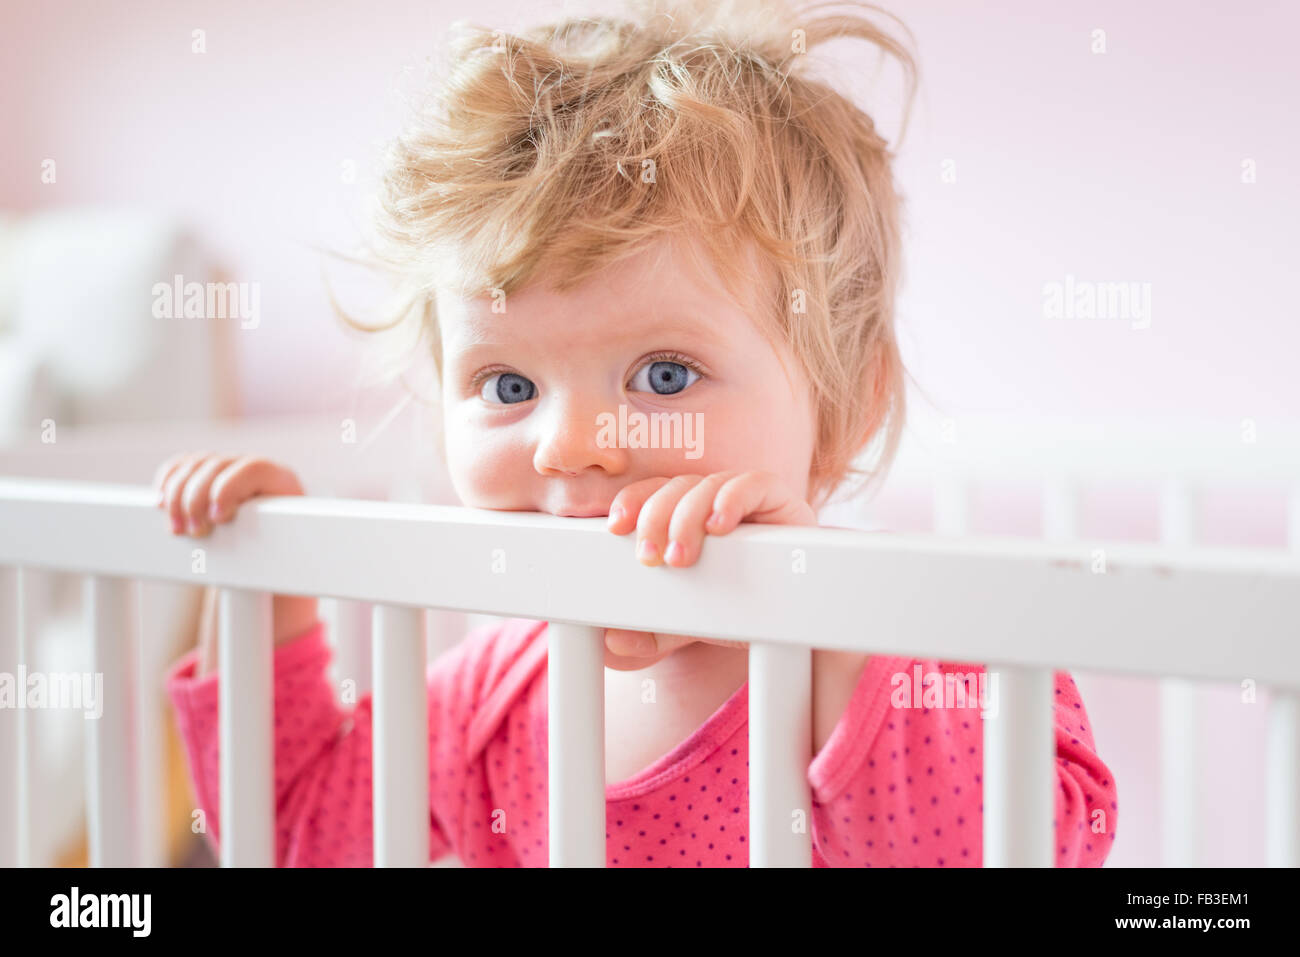 One year old baby in her cot - Stock Image